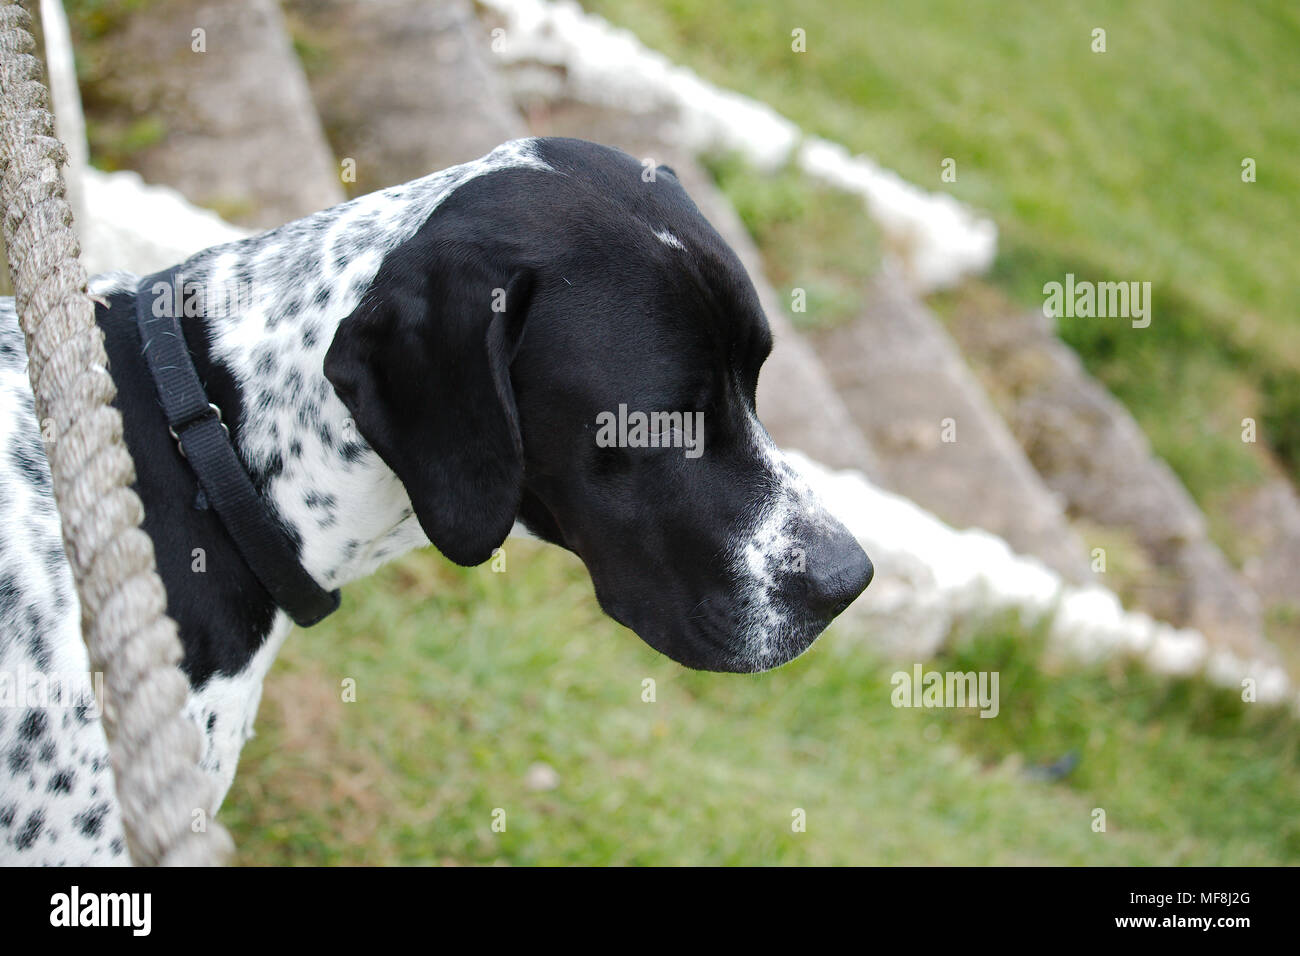 A portrait of a pointer dog looking at something in the distance. - Stock Image